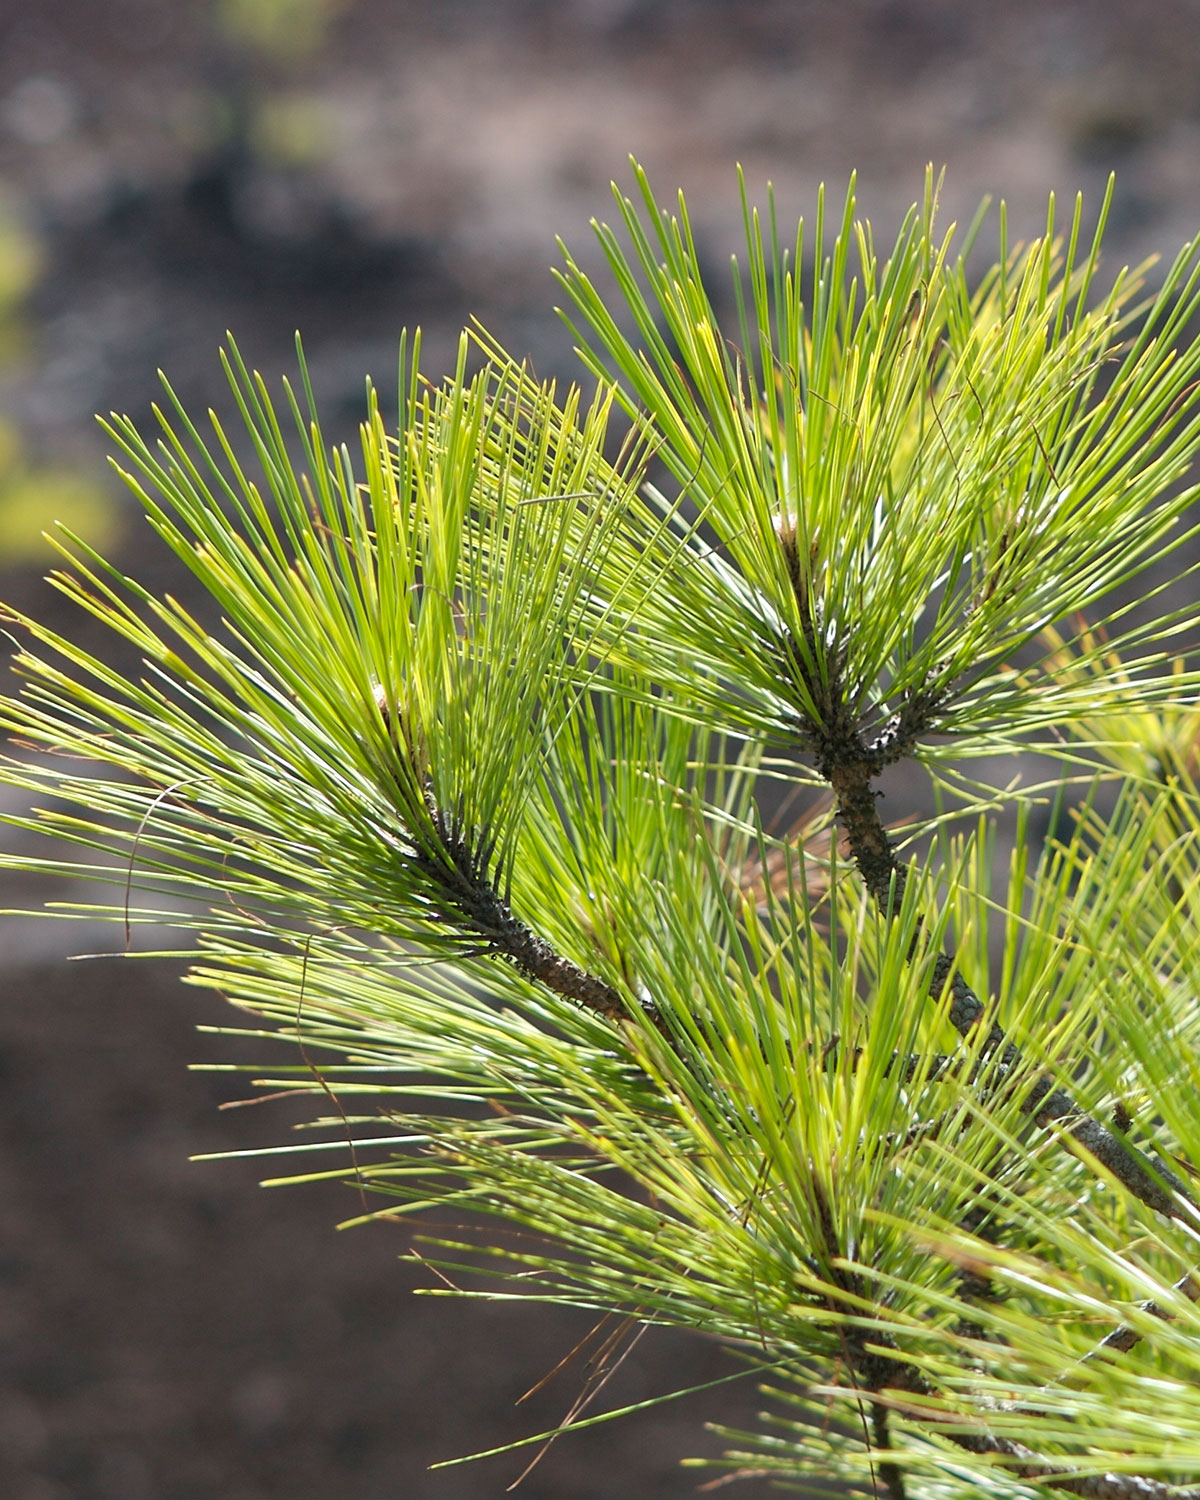 Pinus canariensis, a coniferous gymnosperm endemic to the Canary Islands, has the second-largest genome included in the study.